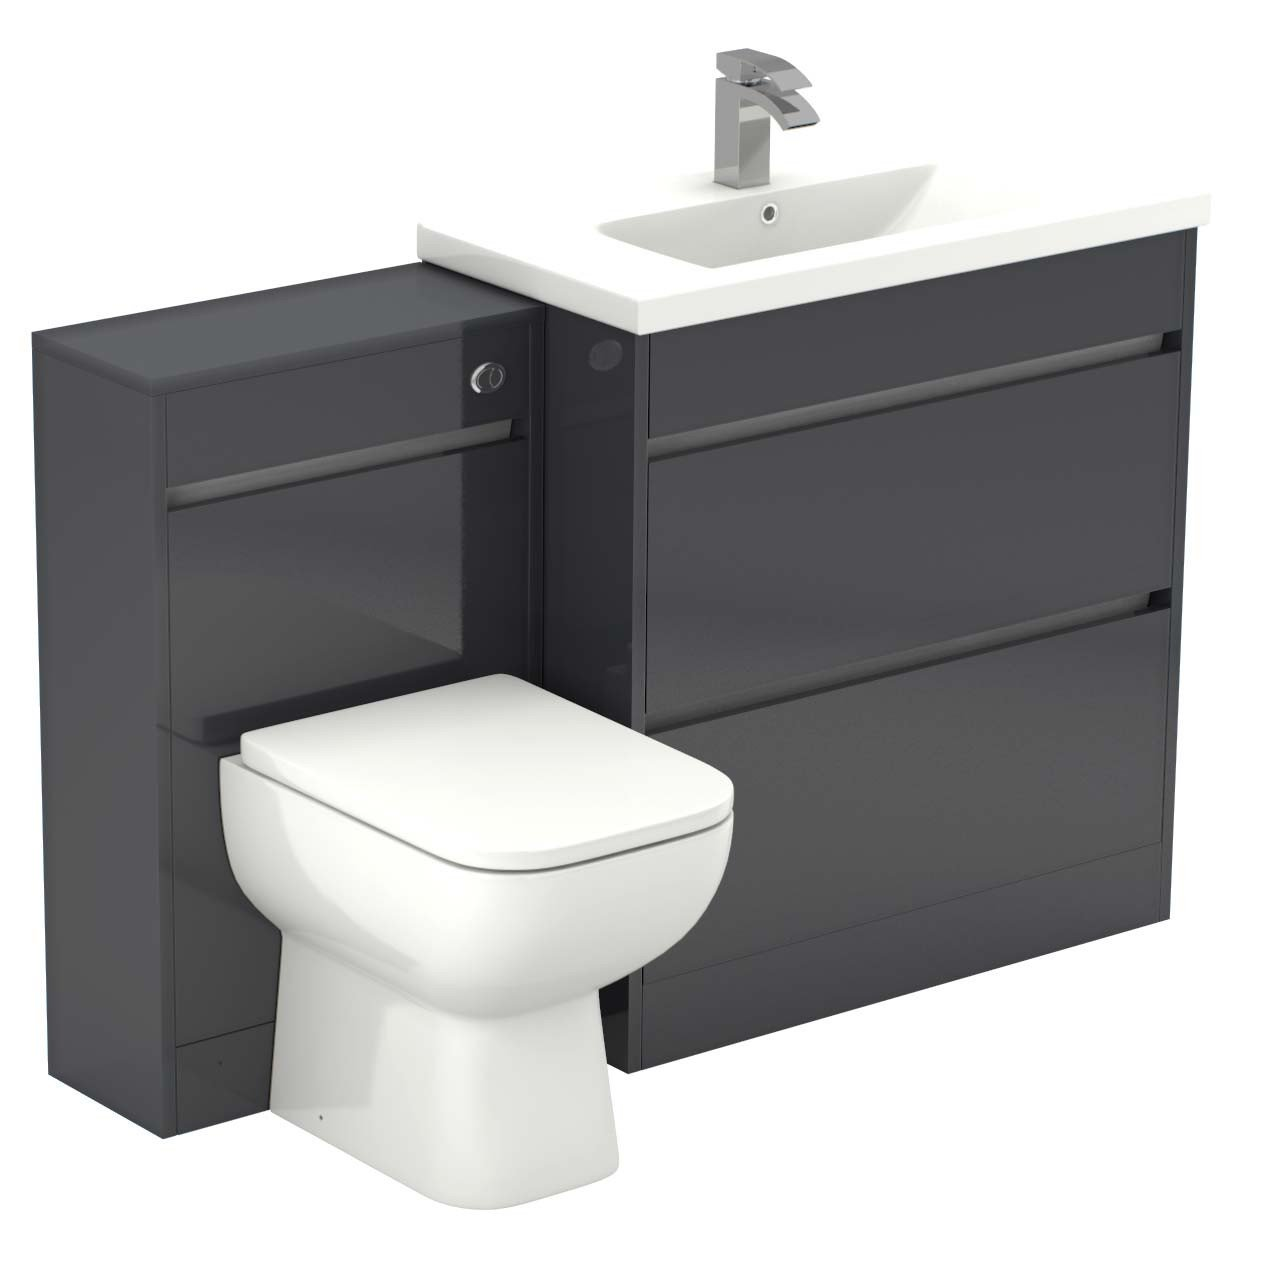 reputable site ff3d3 43790 City Grey Gloss 1300mm 2 Drawer Vanity Unit Toilet Suite